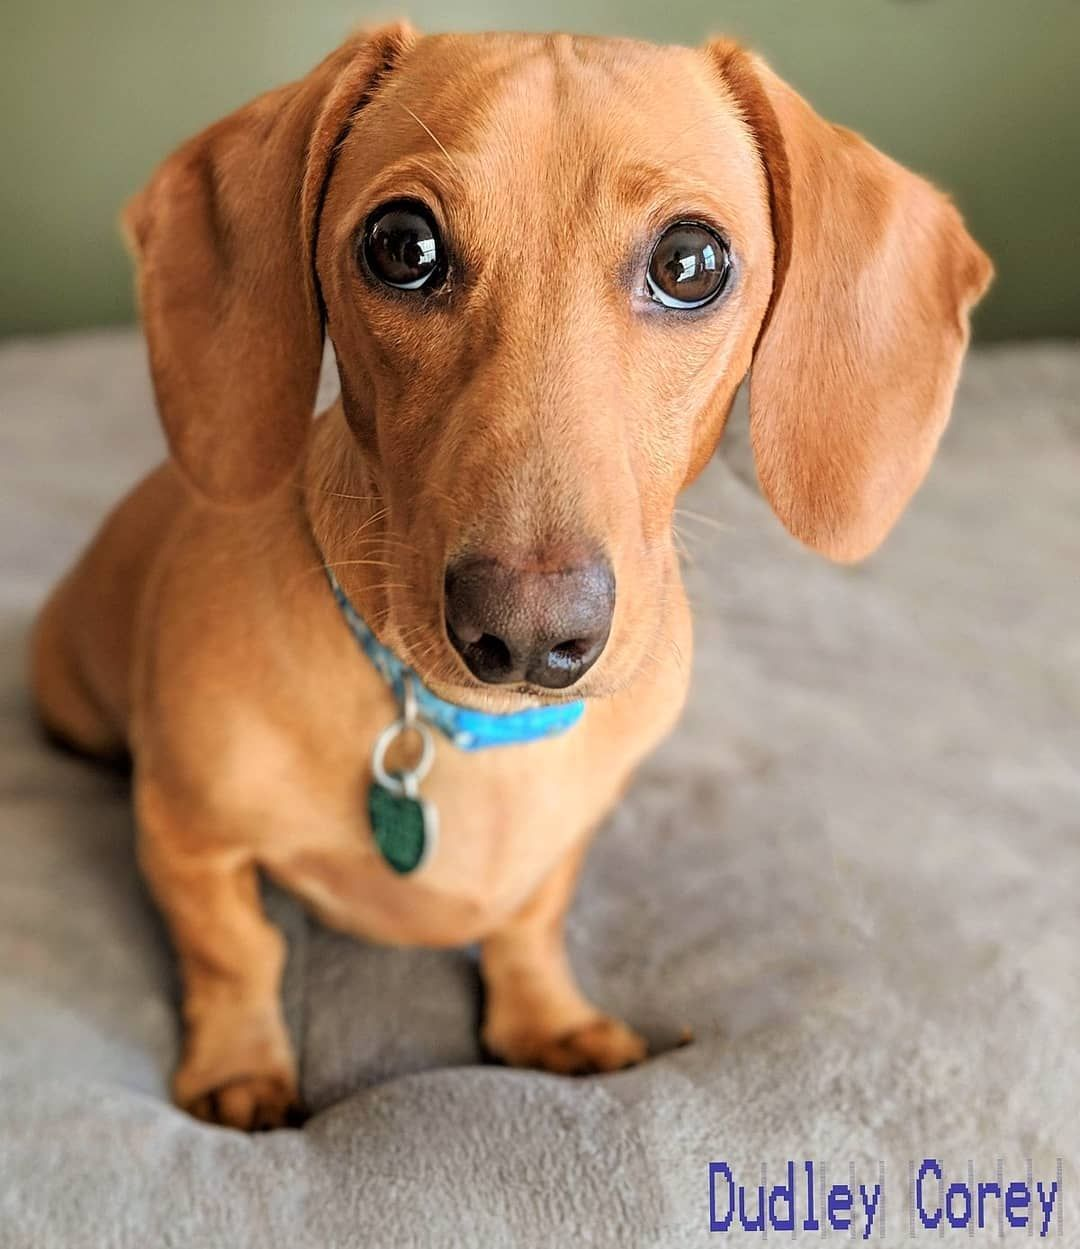 Dudley Corey The Little Brown Dachshund Dogstagram